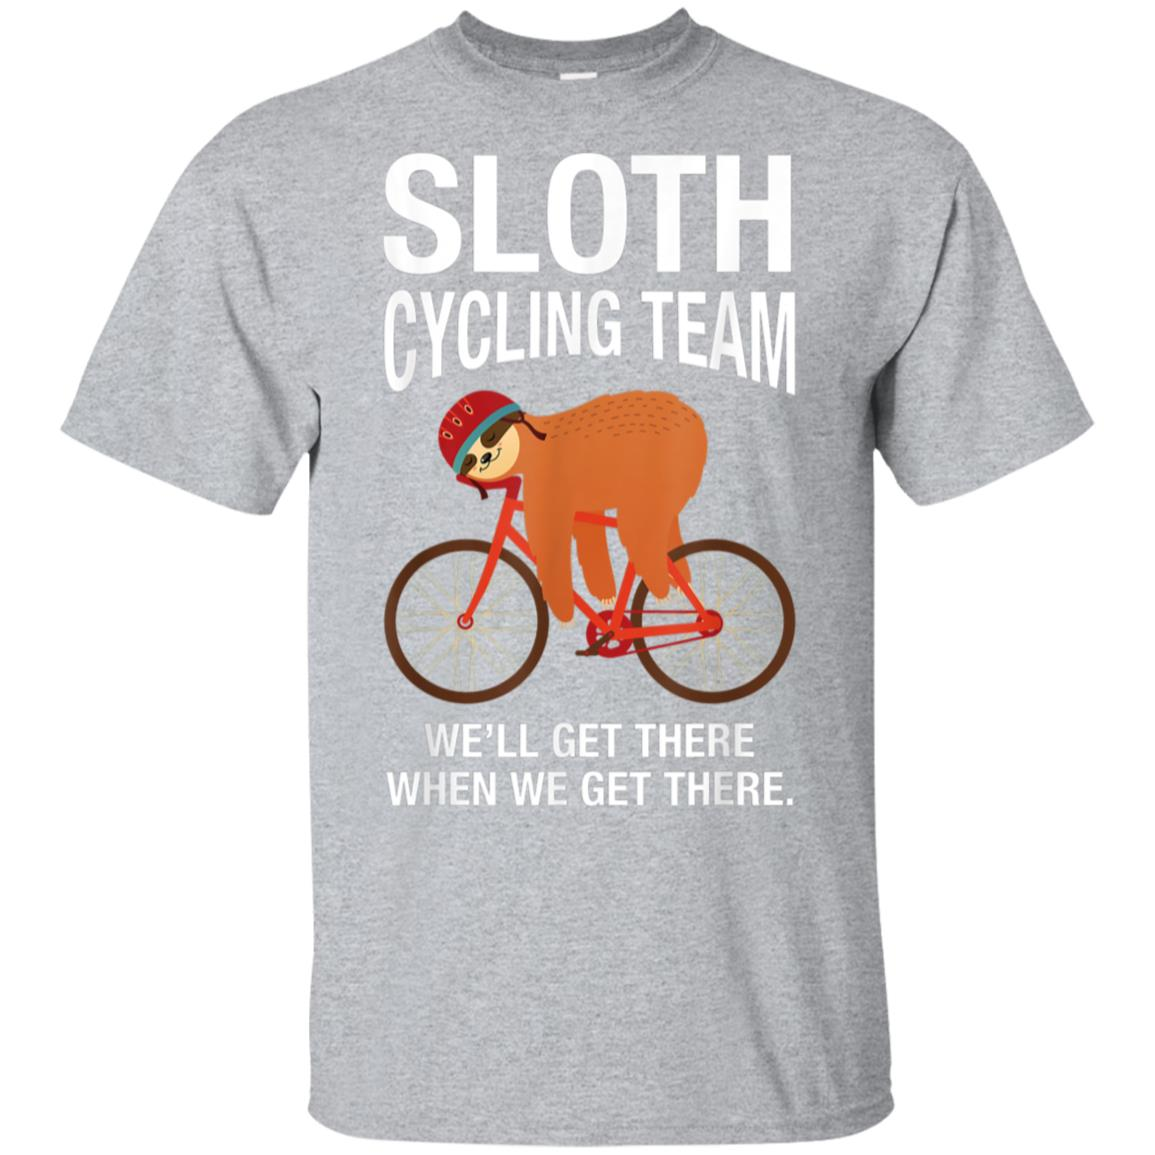 Sloth Cycling Team - Lazy Sloth Sleeping On Bicycle T-Shirt 99promocode